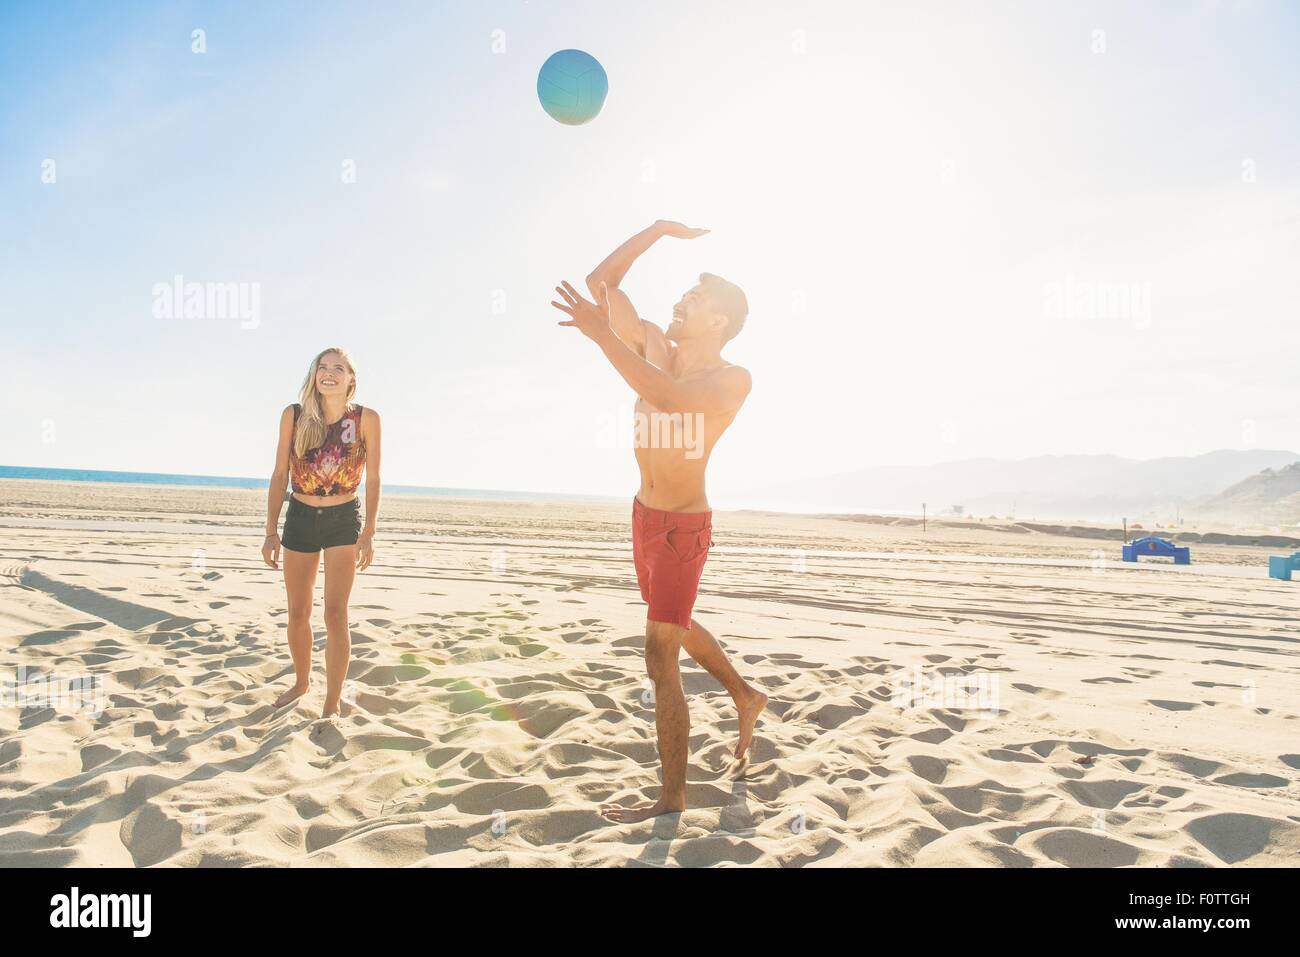 Le jeune homme sur le point de la plage de grève volley-ball Photo Stock